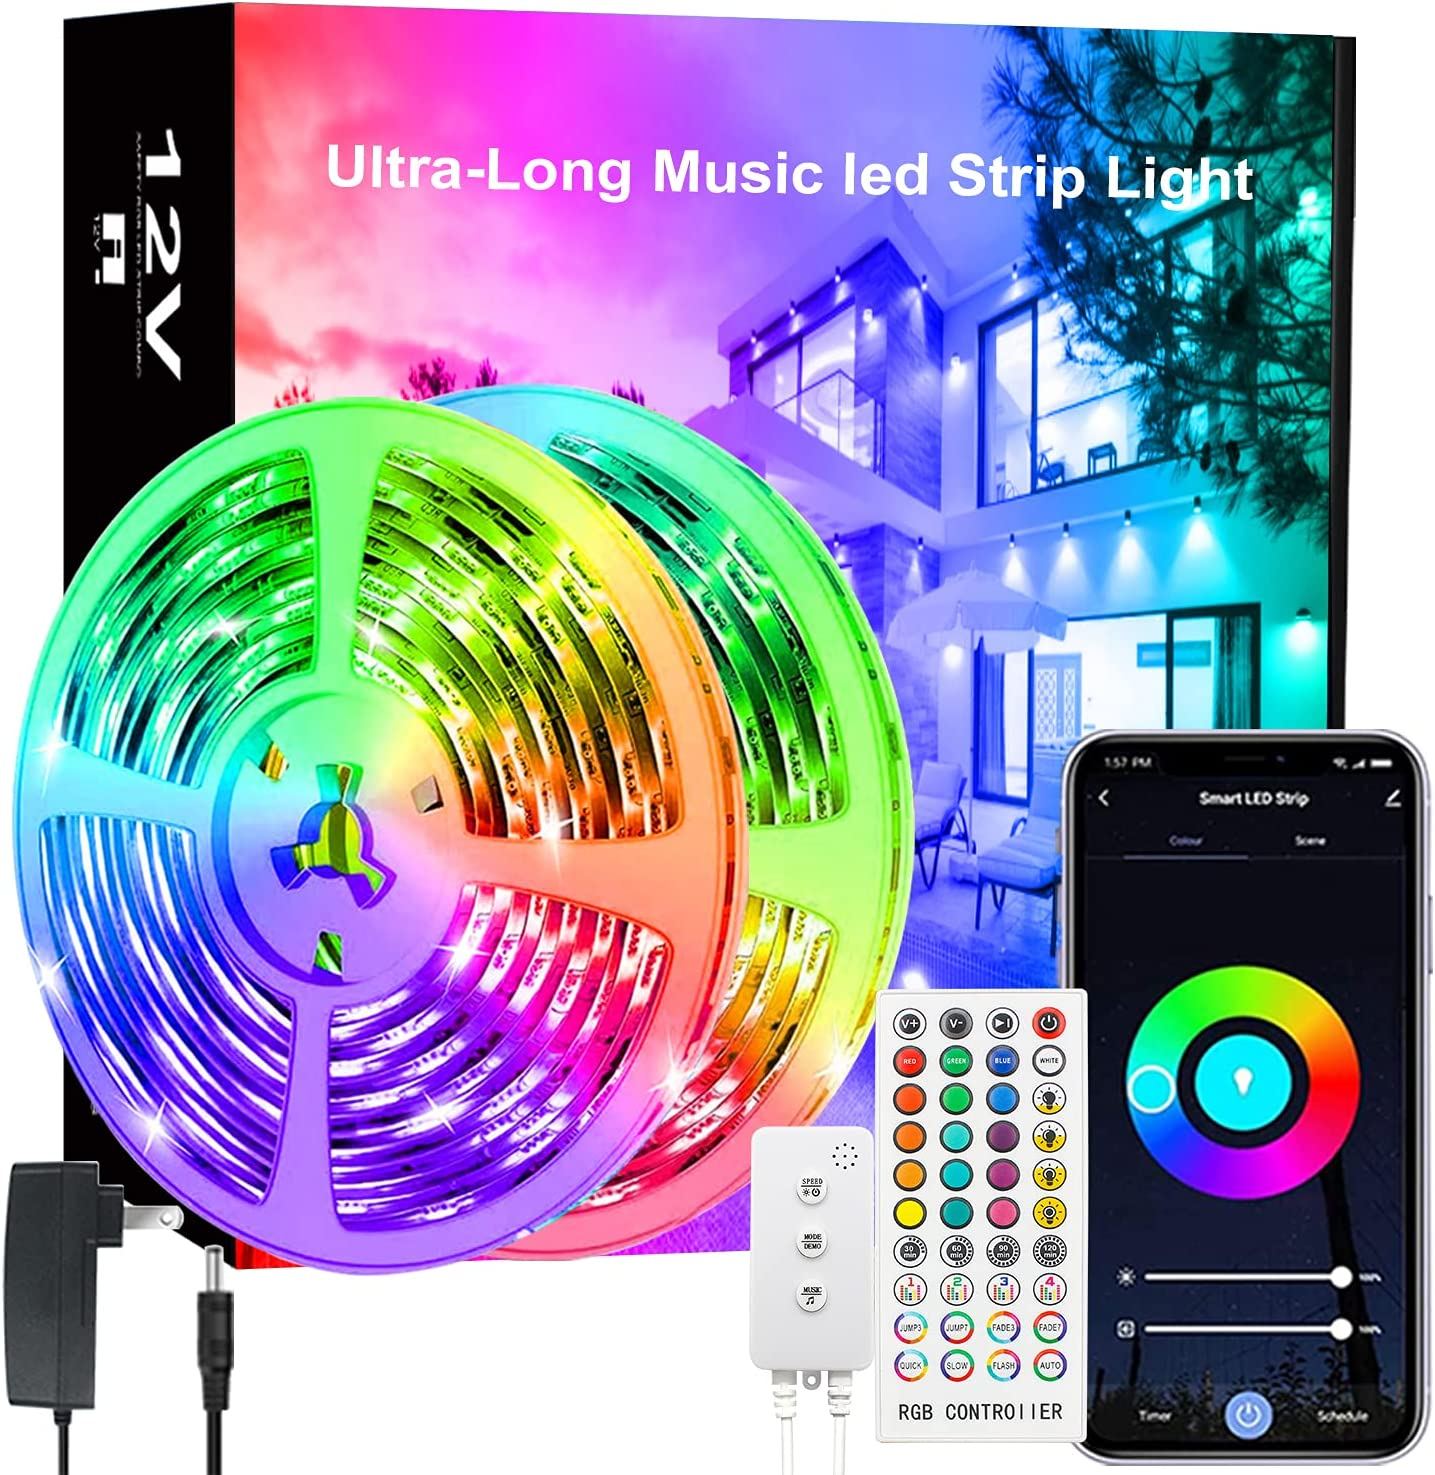 Selling Limited Special Price LED Strip Light 65.6ft Lights Music Bedroom Color Sync for